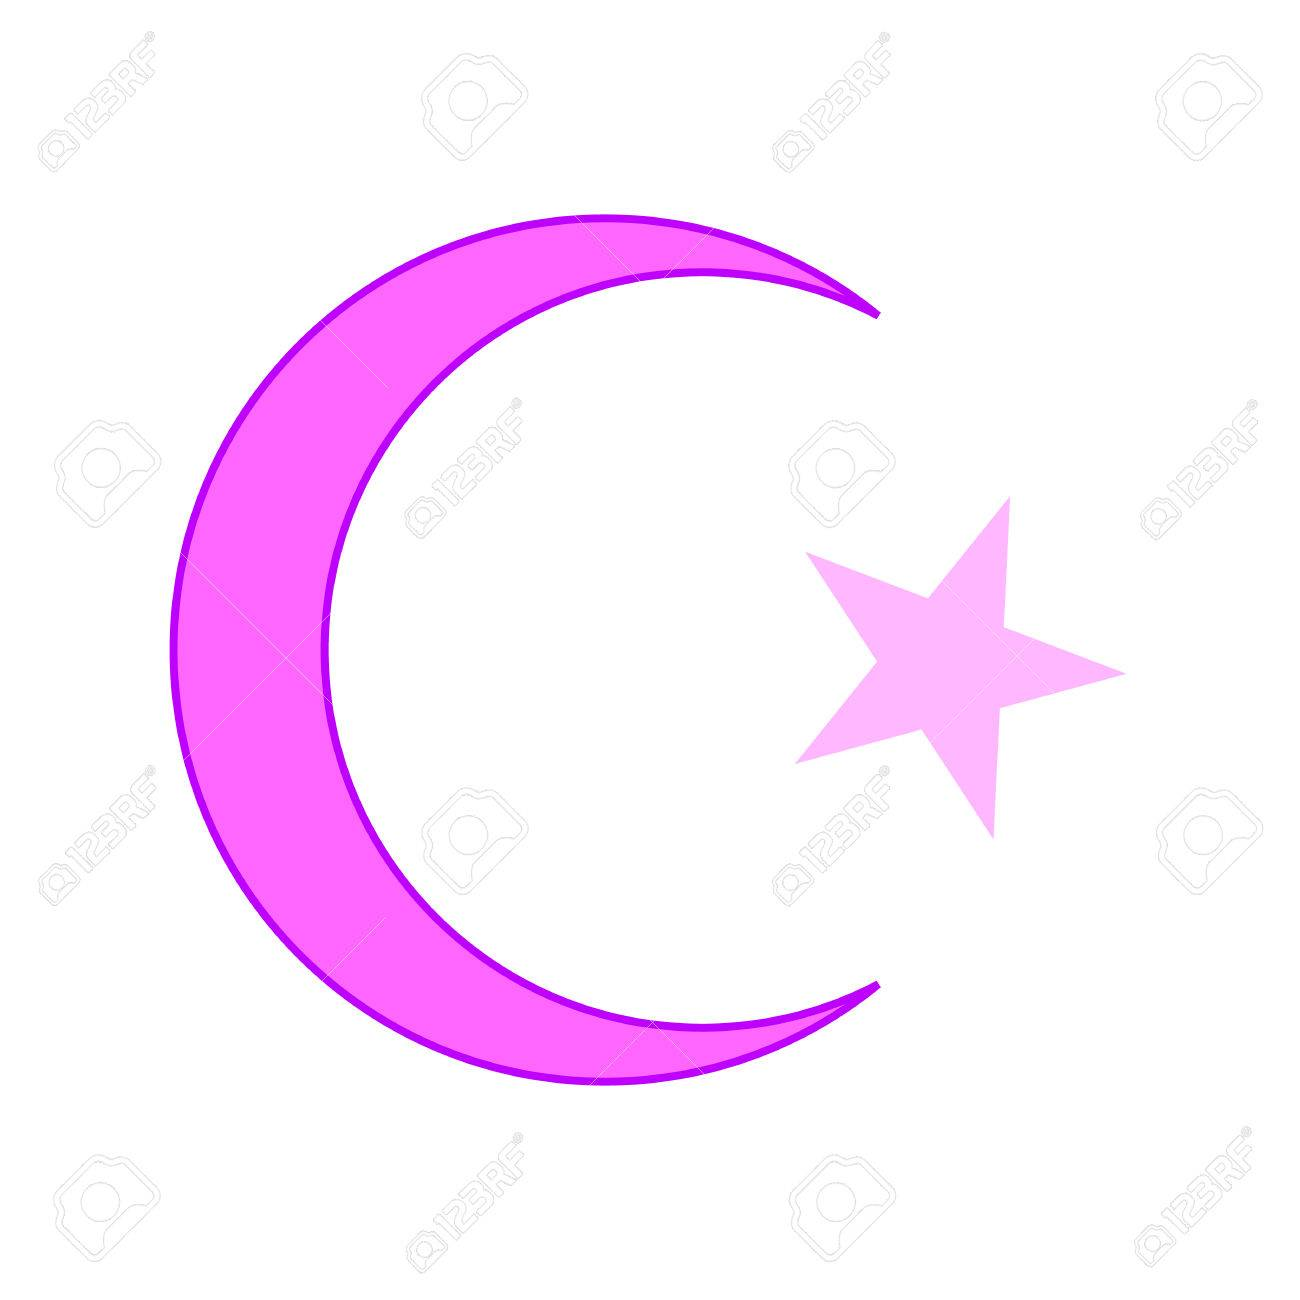 Star And Crescent Symbol Icon On White Background Vector